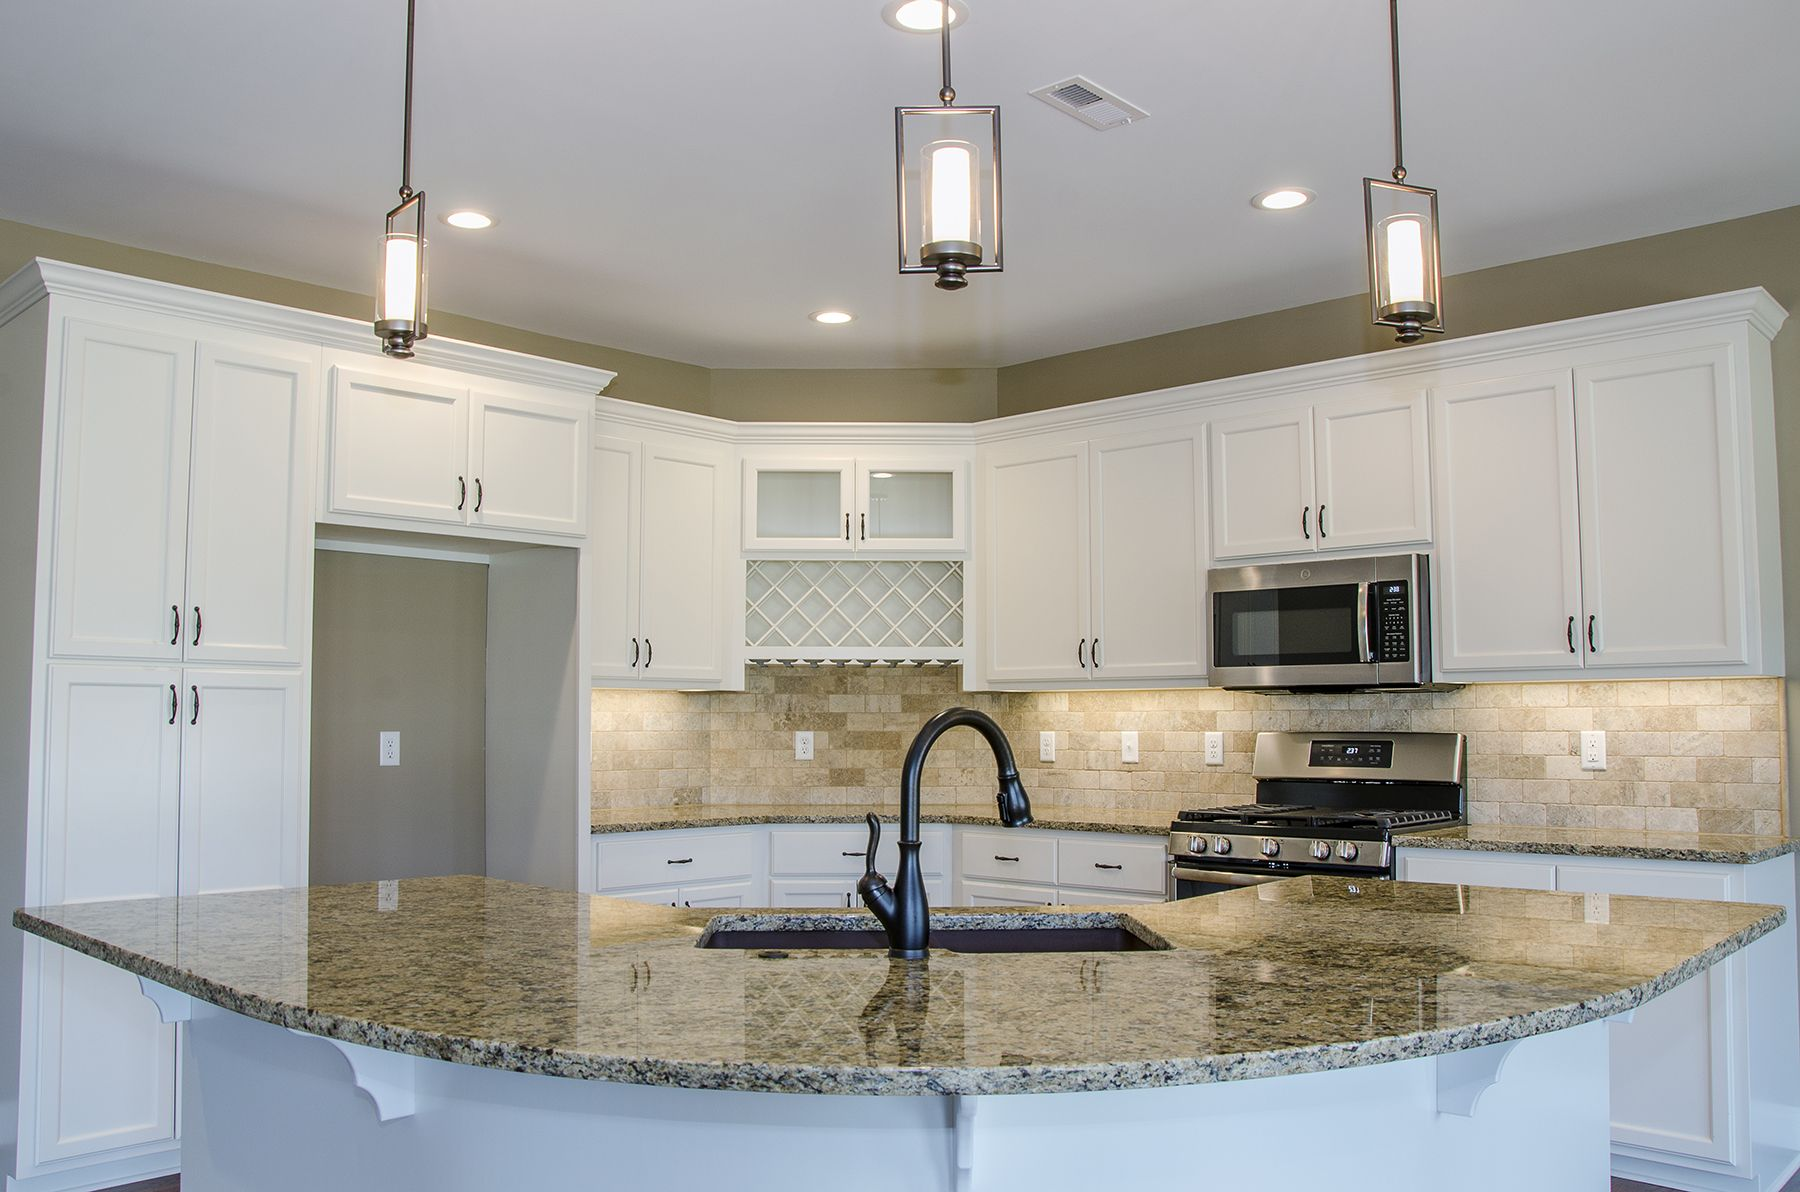 Beautiful L Shaped Kitchen With White Cabinets Granite Countertops And A Curved Island With Sink Gr L Shaped Kitchen Designs L Shaped Kitchen Kitchen Design